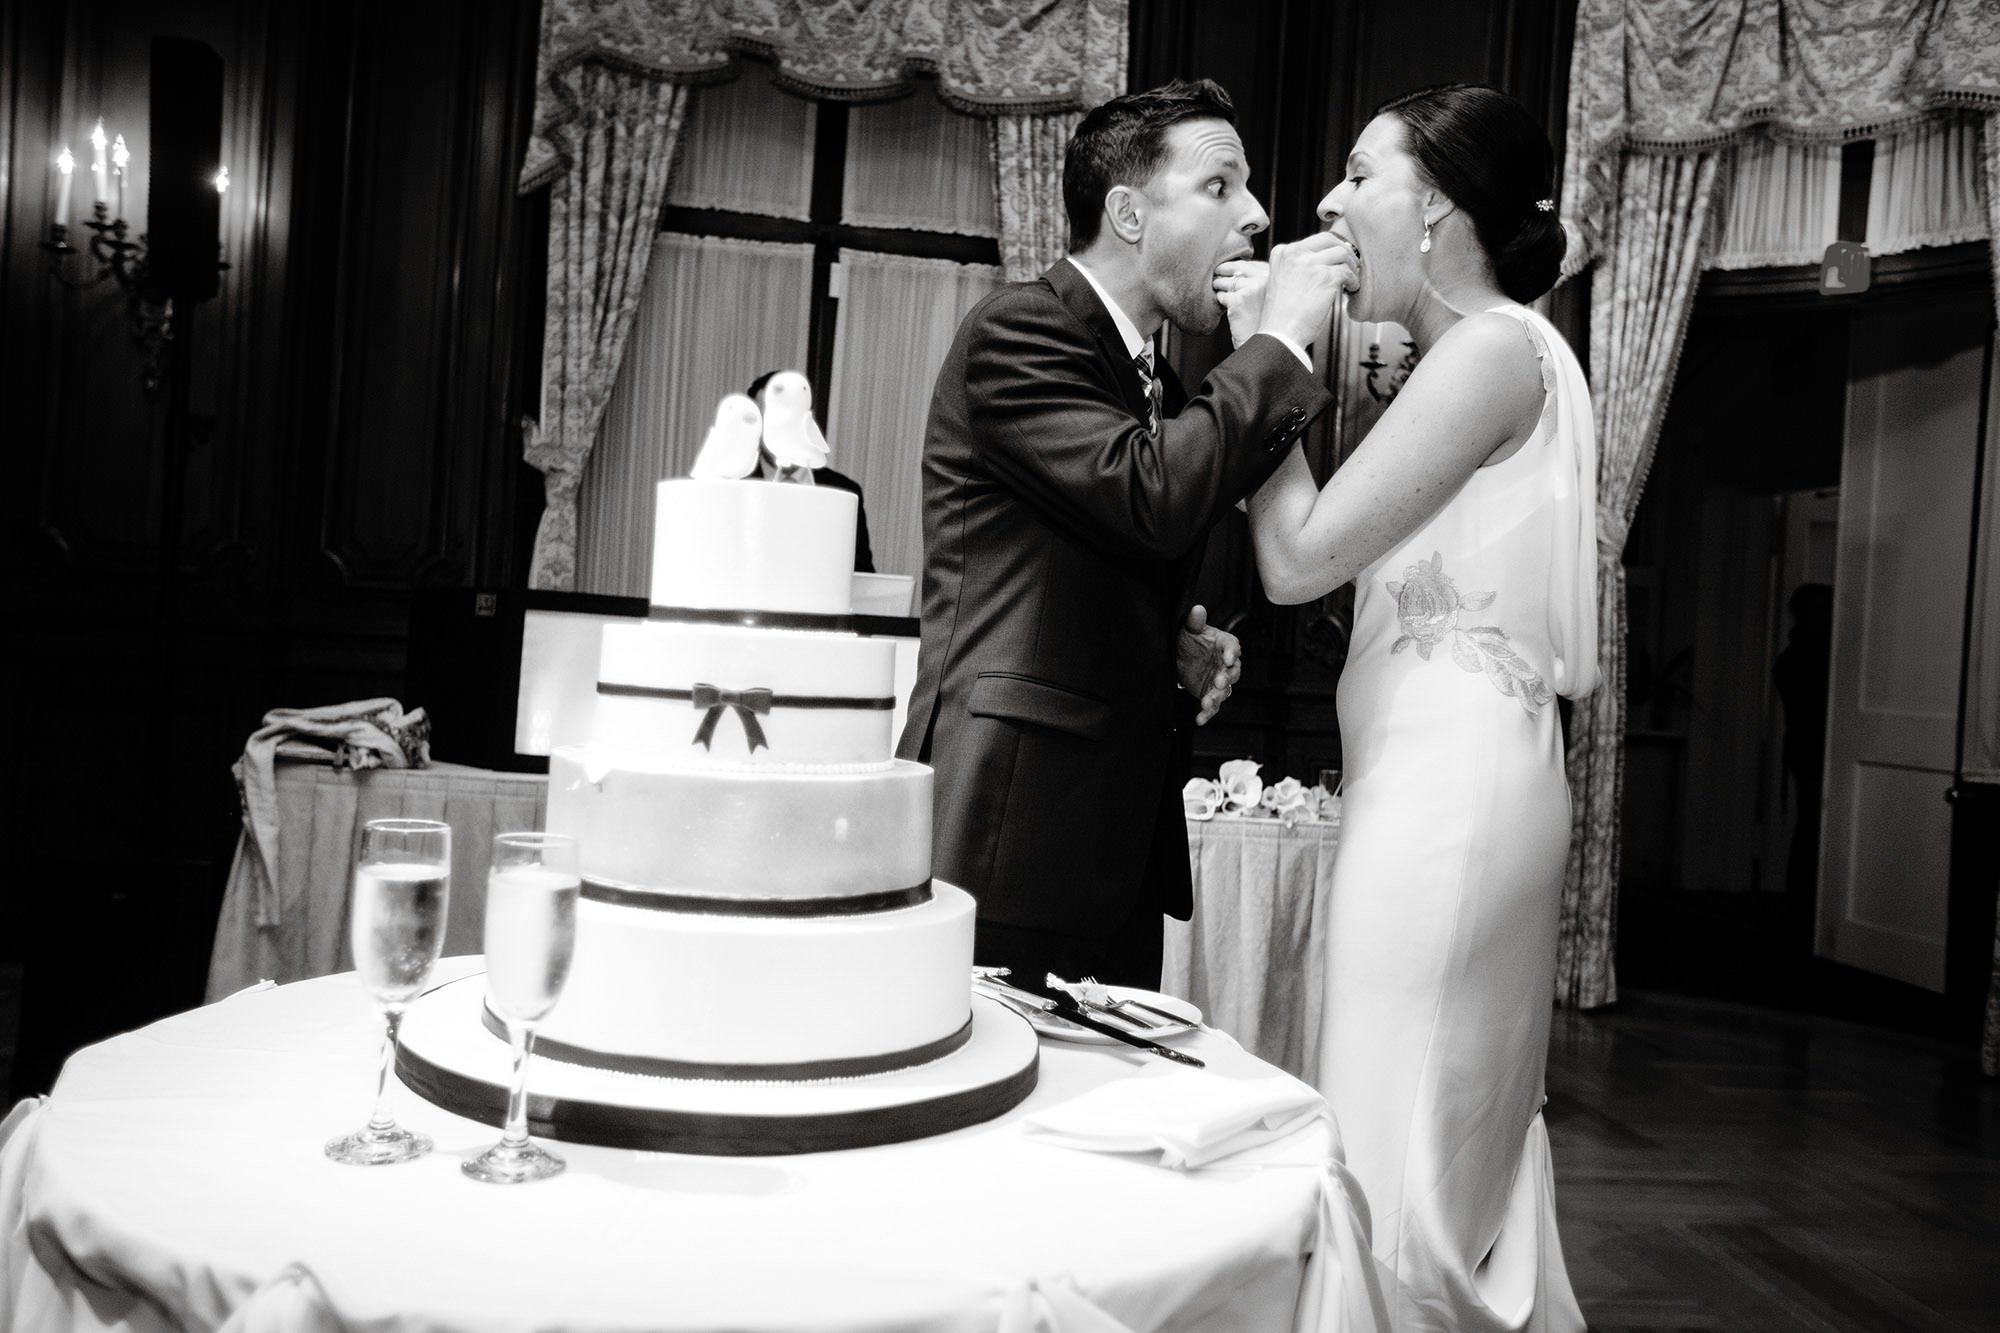 The Bride and Groom cut their Cake during the wedding reception.